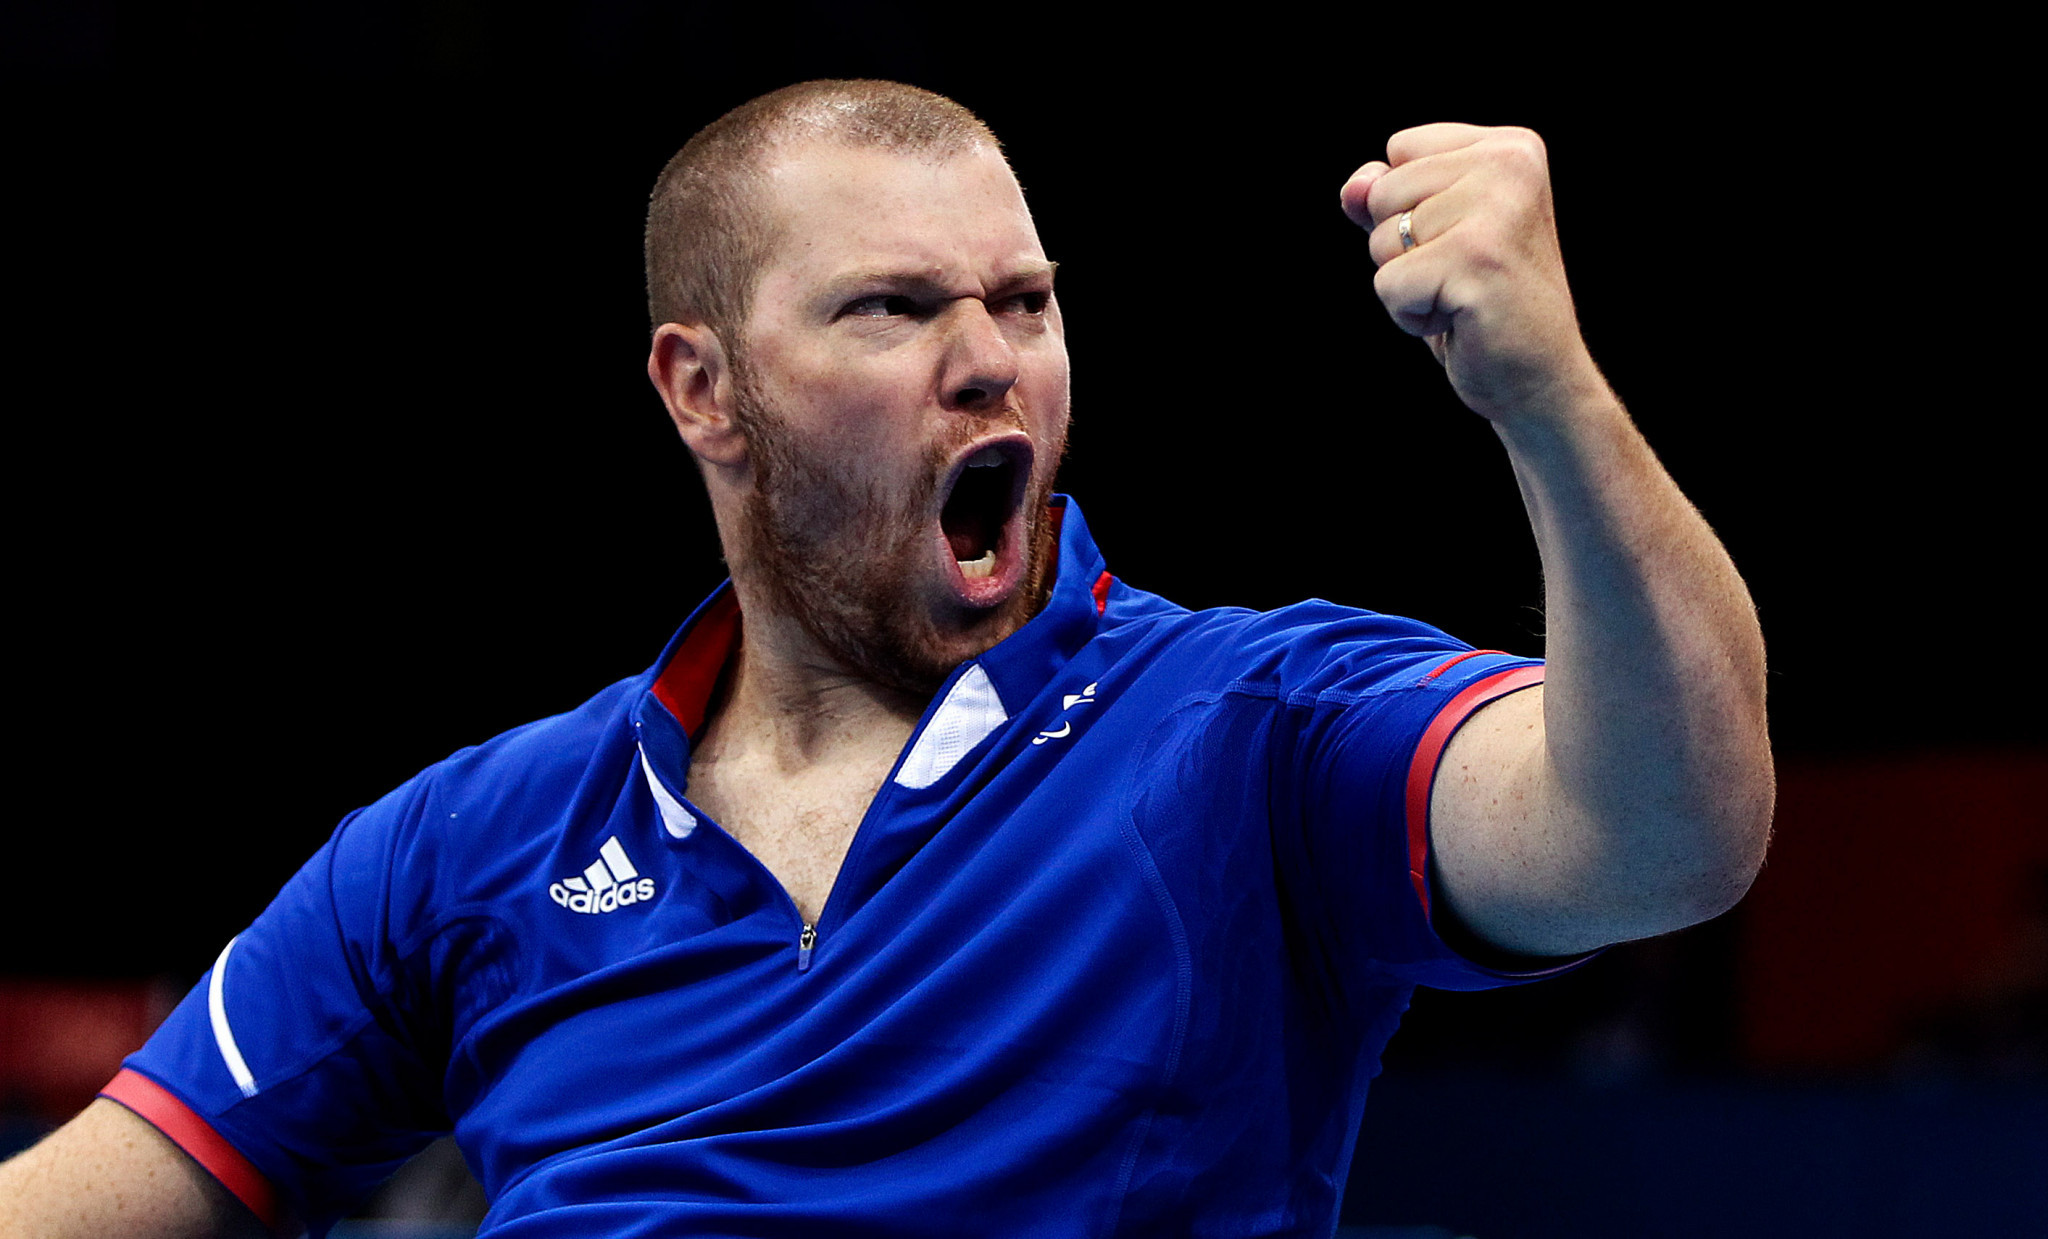 Rio 2016 champion Lamirault lands gold at Para European Table Tennis Championships